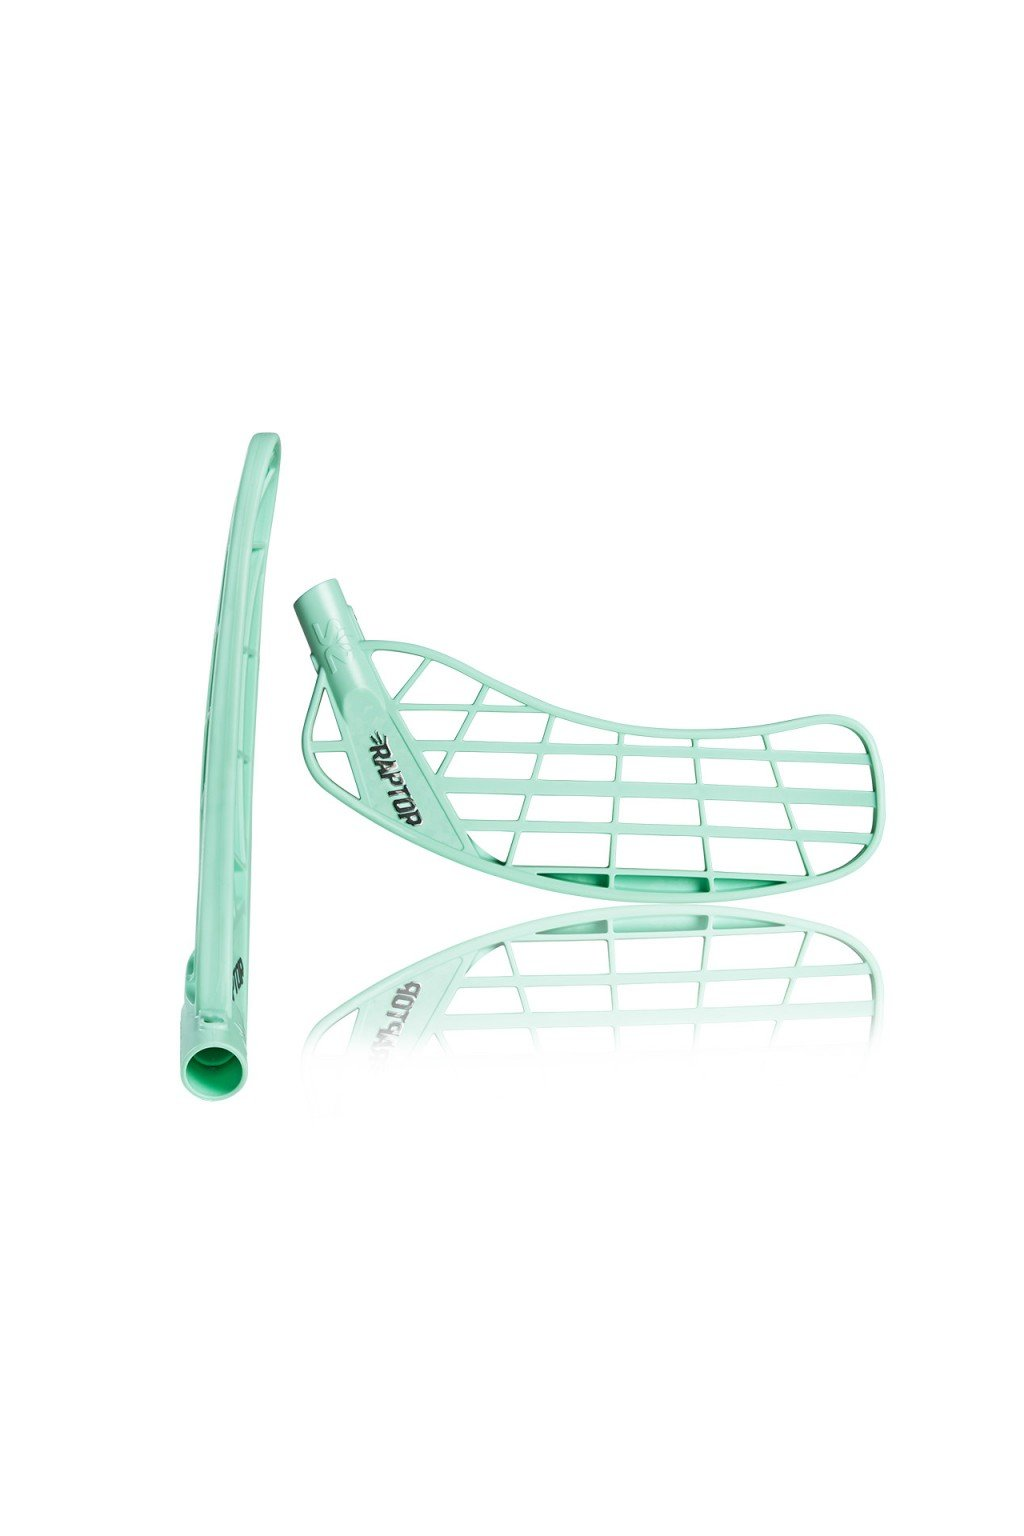 salming raptor blade touch plus mint green r (1)